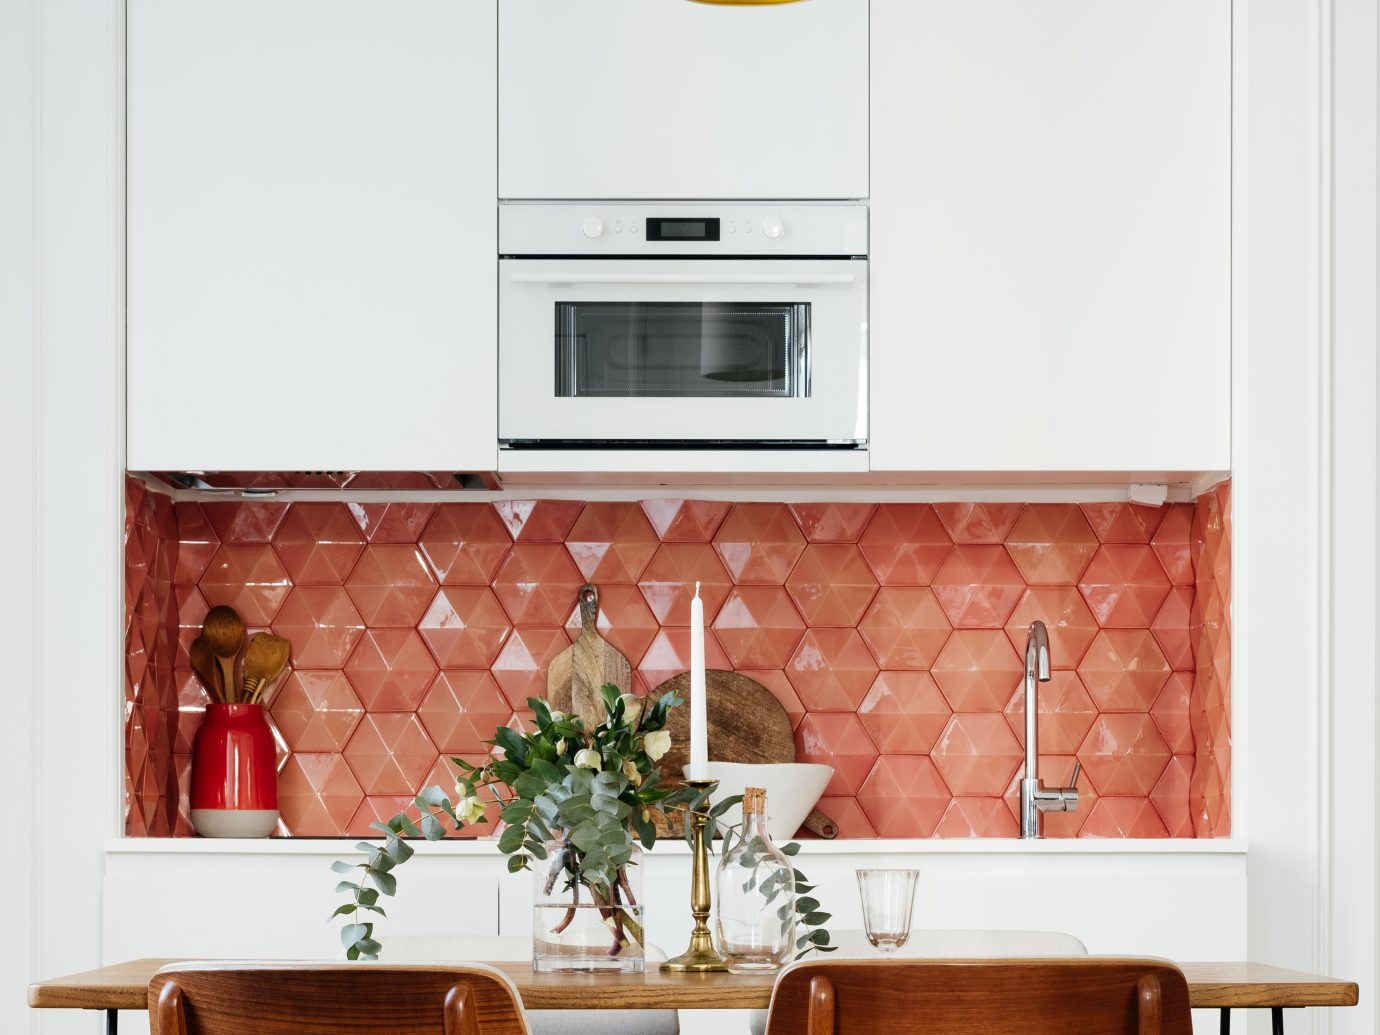 Kitchen space with house plant on table and salmon wall tiling